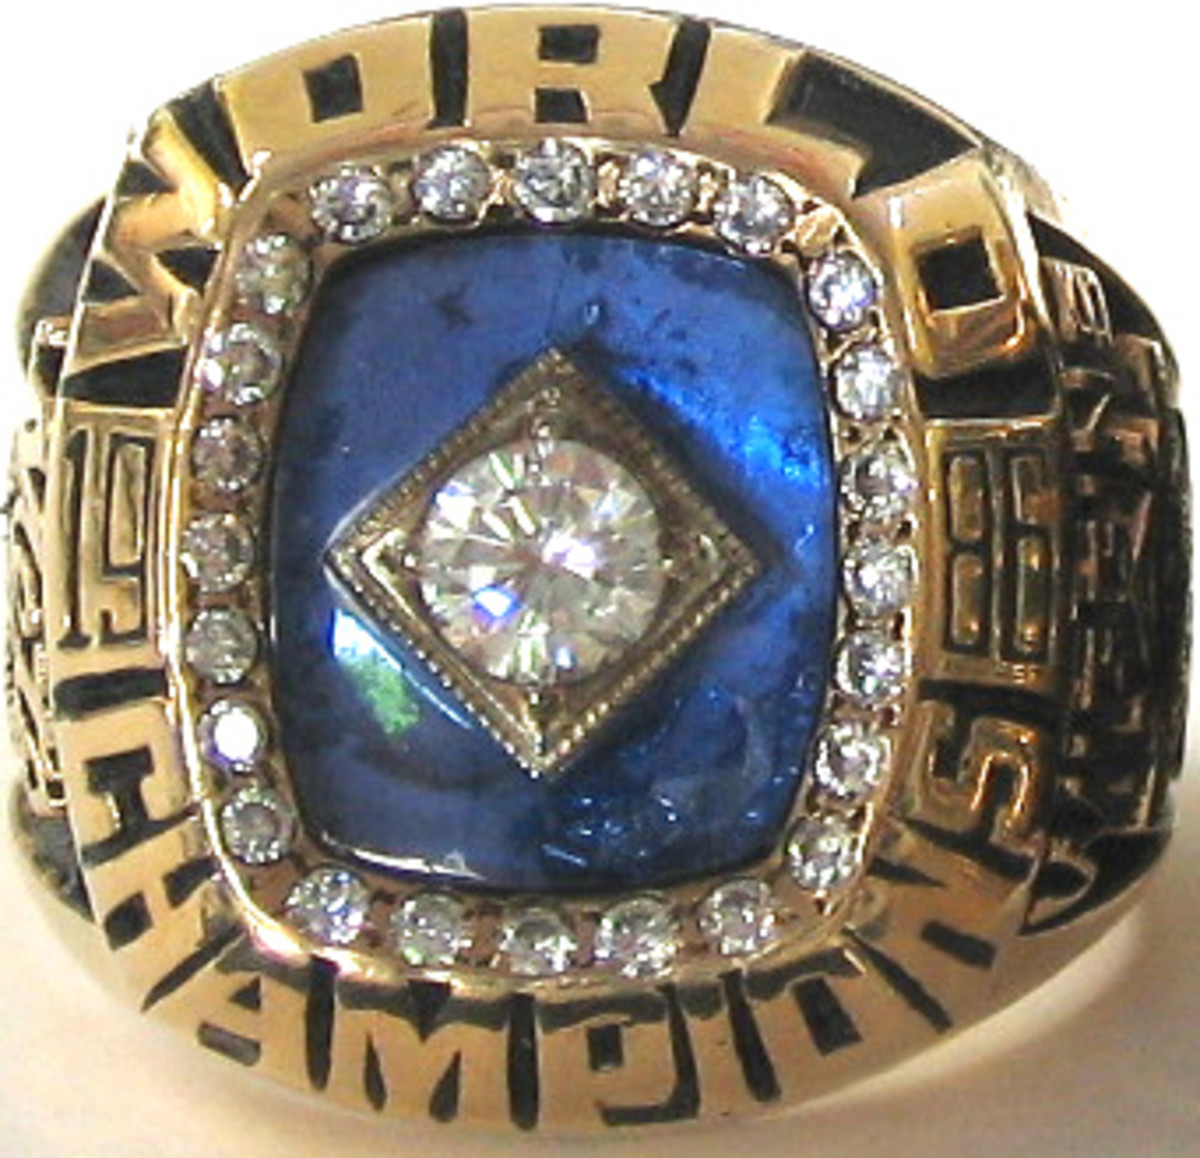 Many 1986 Mets World Series Rings suffer from a discoloring of the blue sapphire stone.